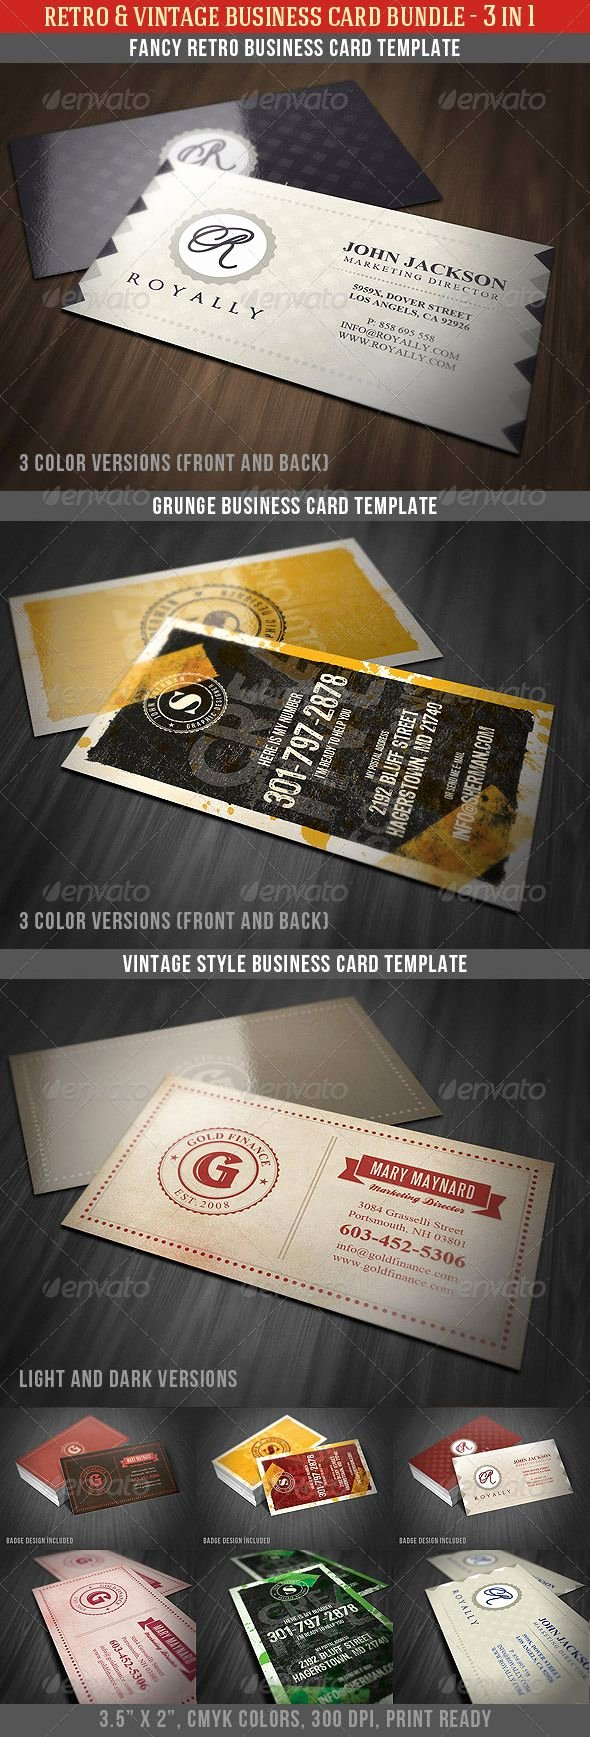 Vintage Style Business Cards Awesome Best 25 Vintage Business Cards Ideas On Pinterest